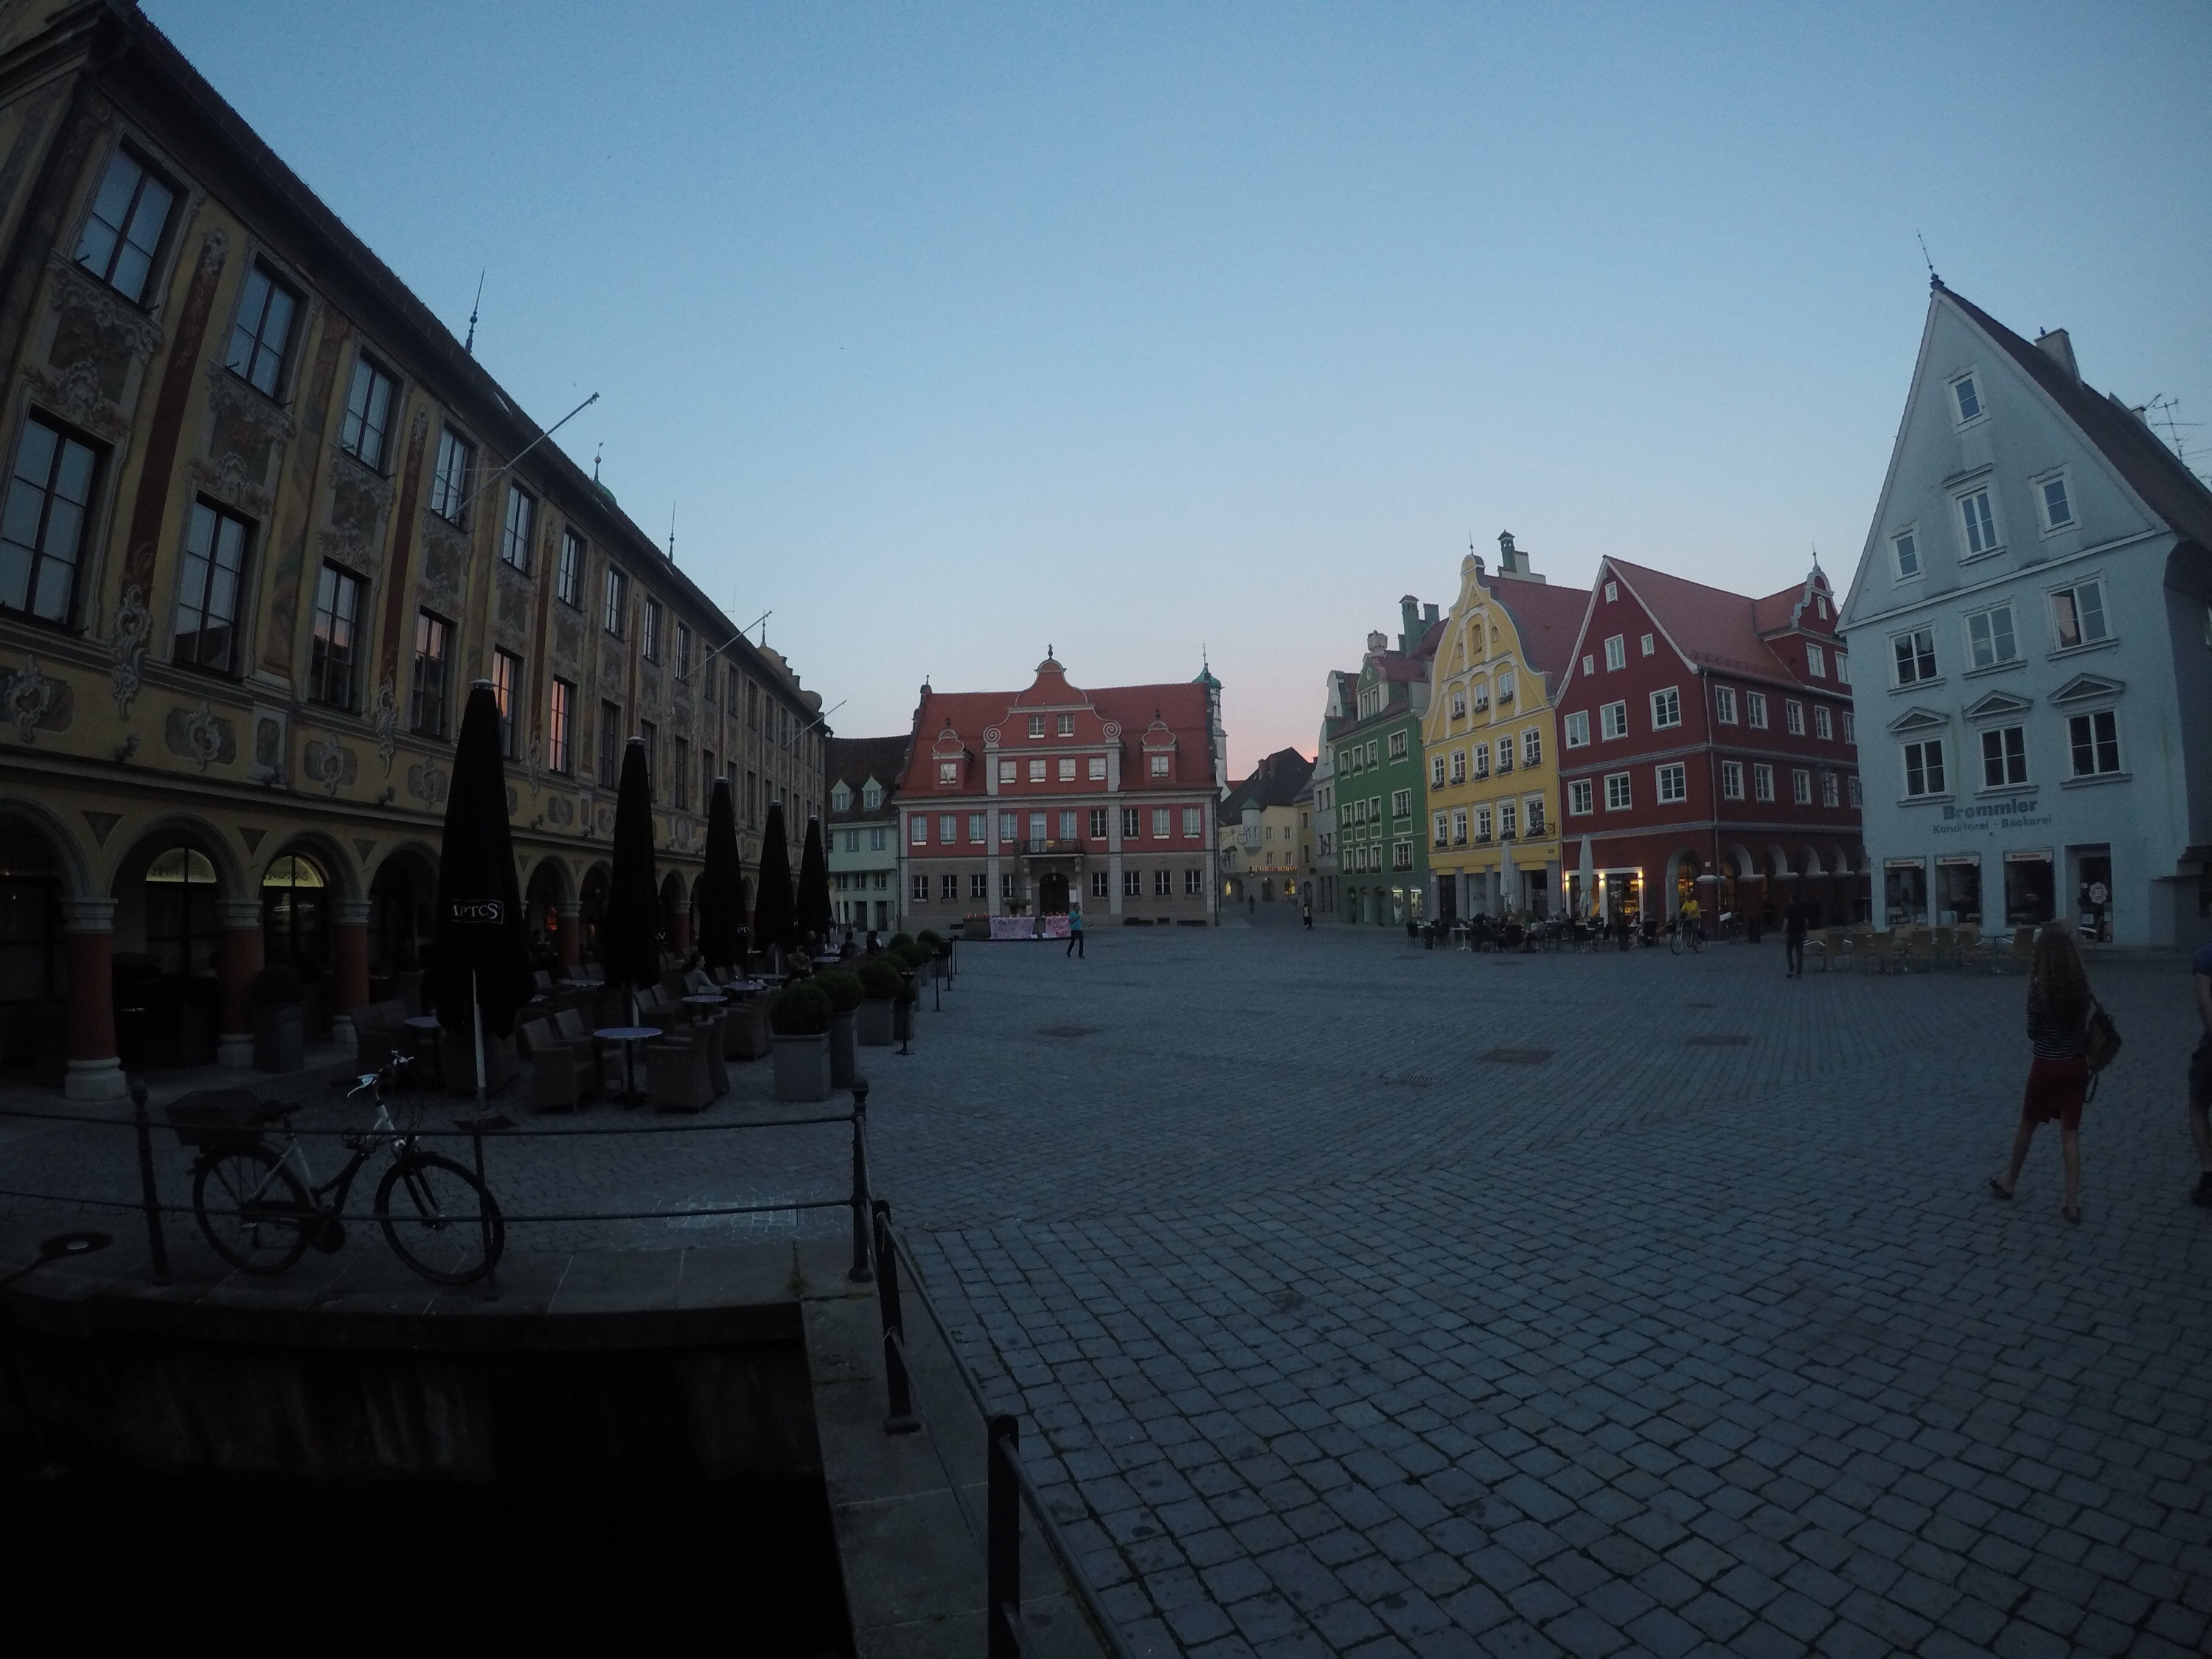 Exploring streets of Fussen, Germany